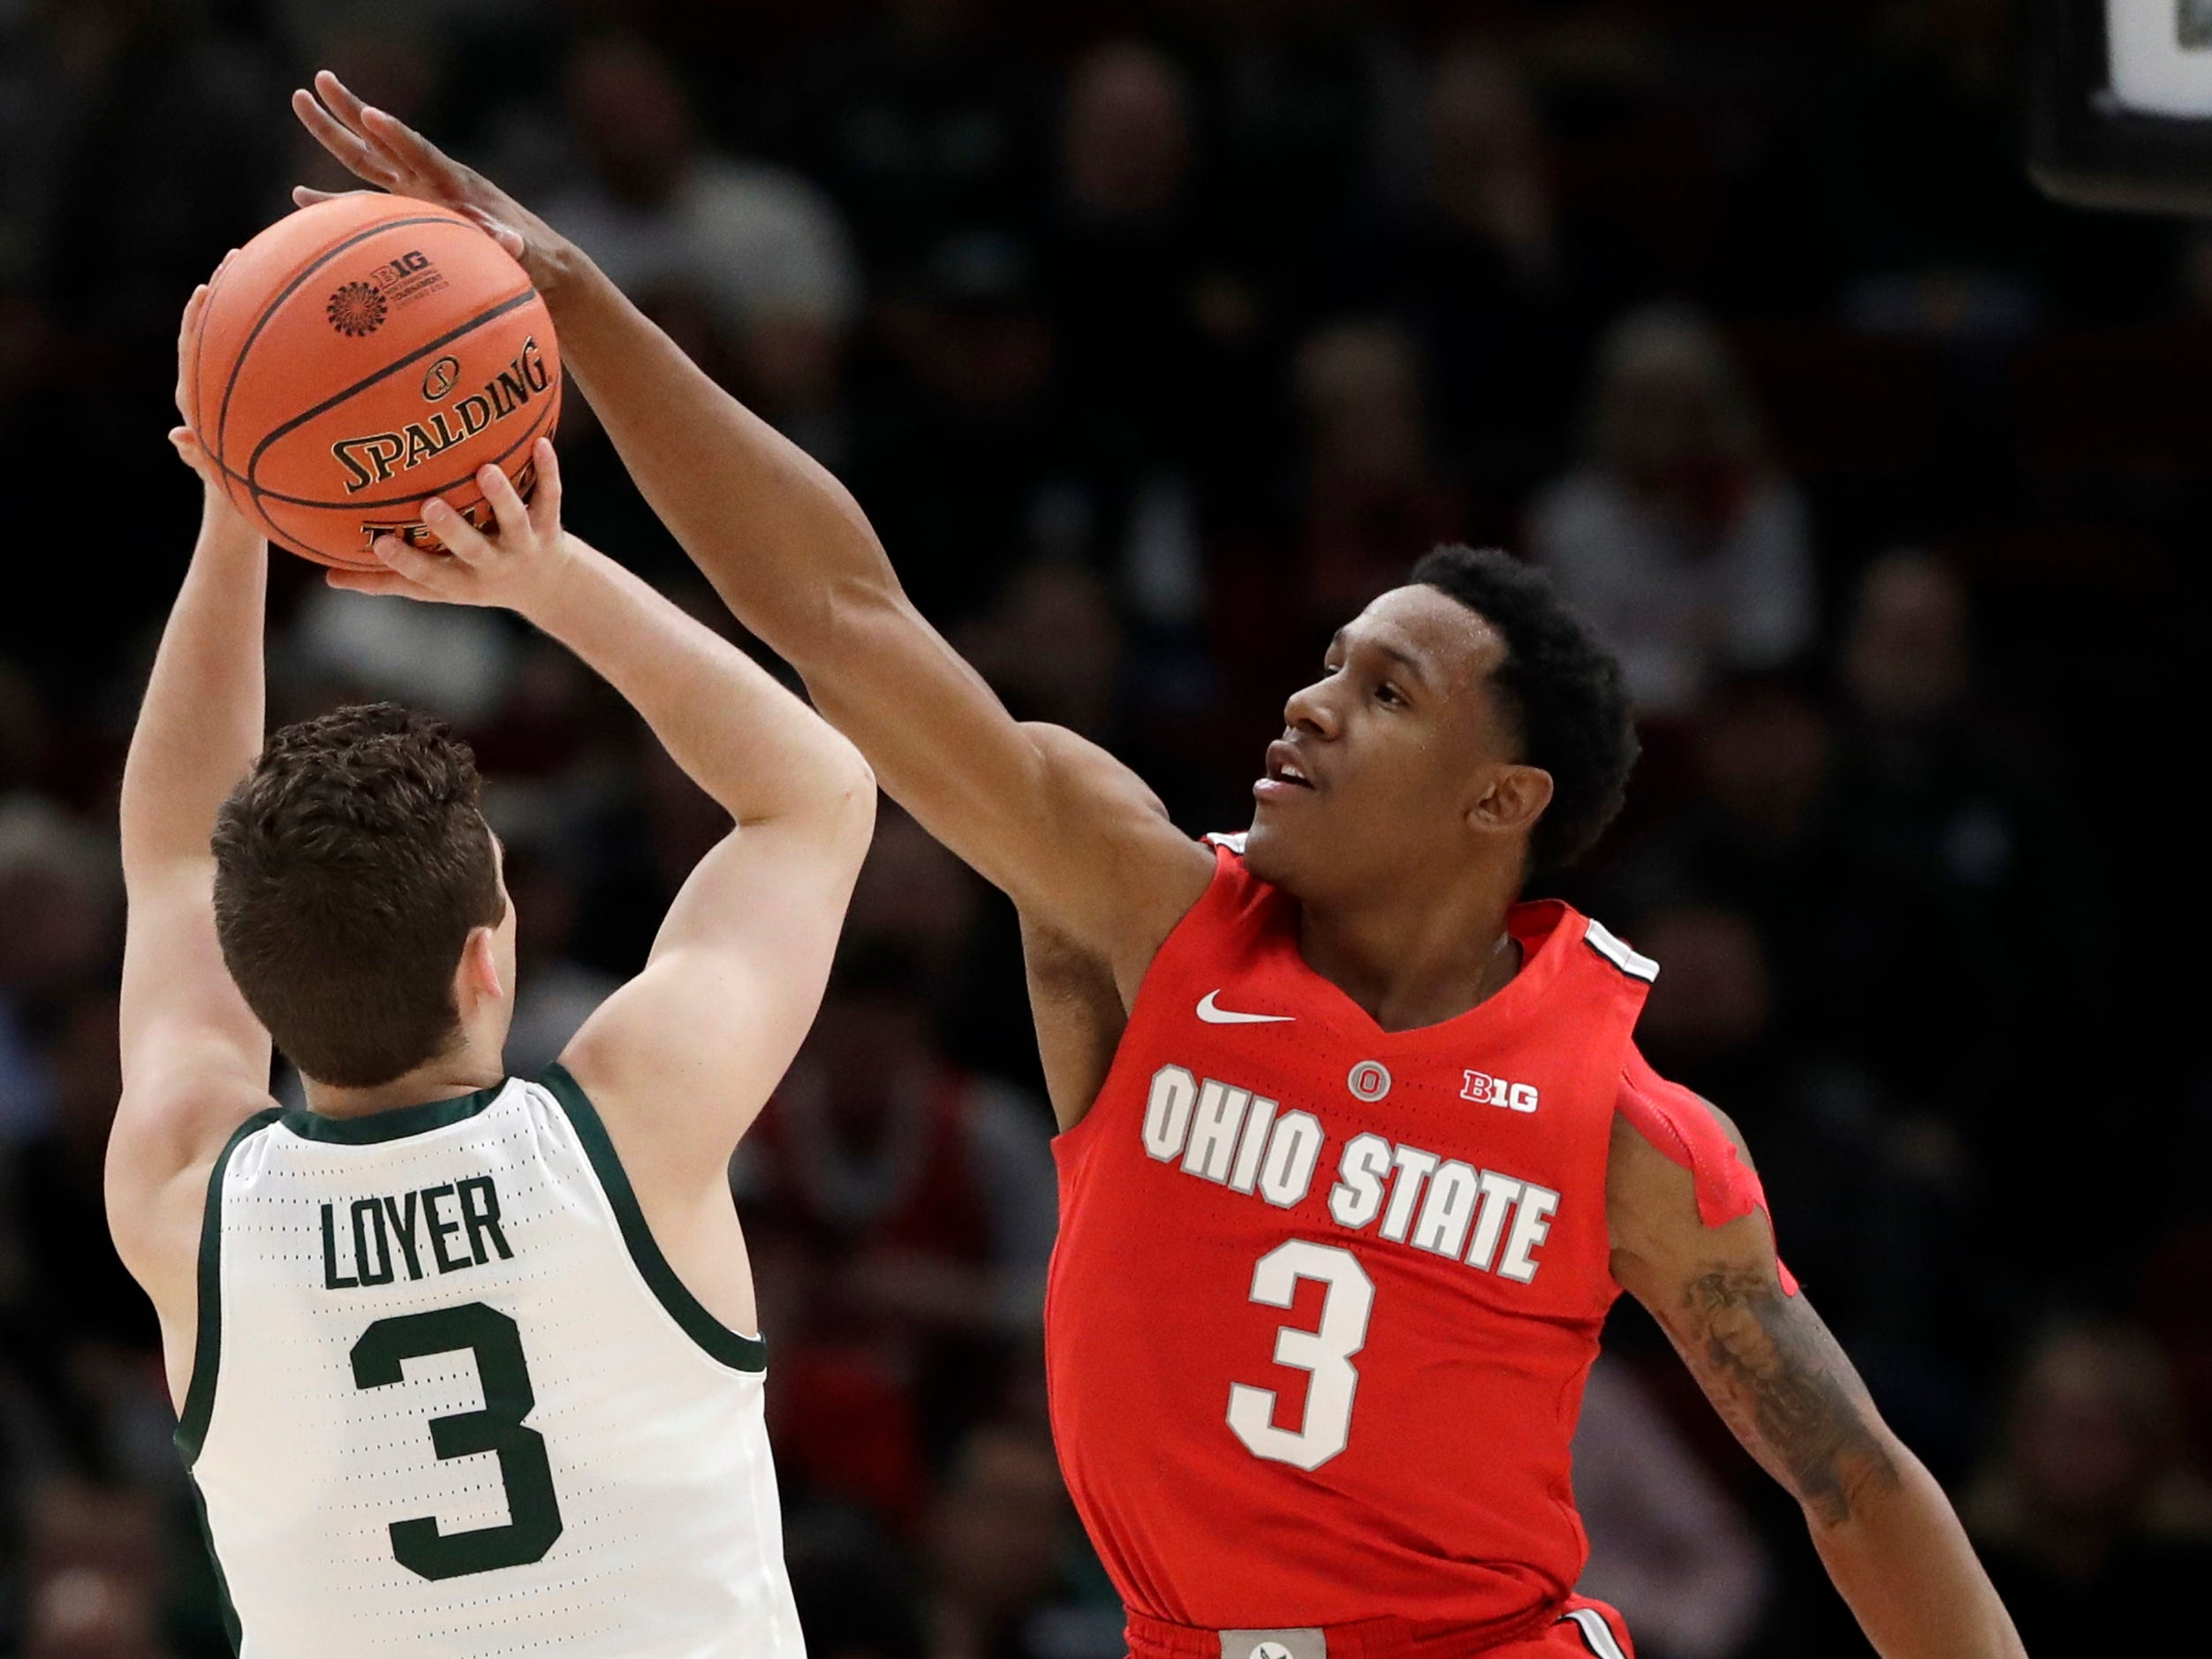 Ohio State's C.J. Jackson, right, blocks a shot by Michigan State's Foster Loyer during the first half.